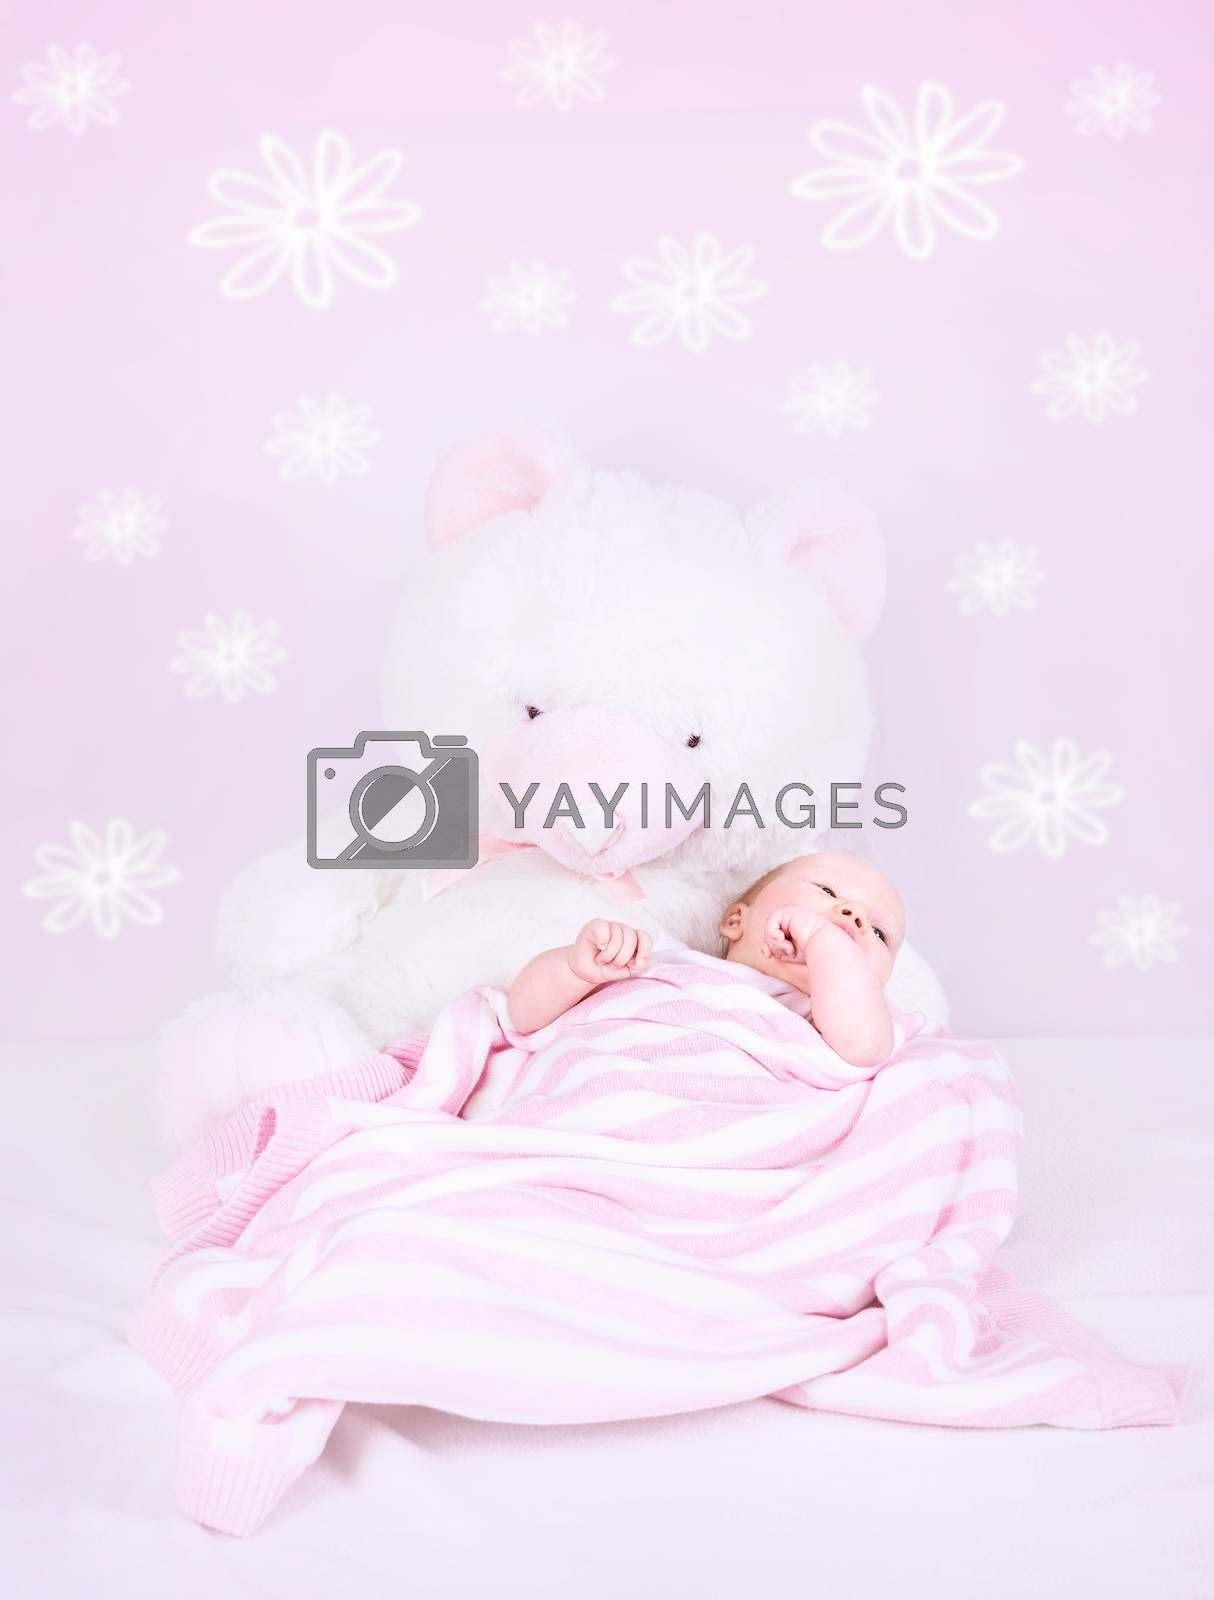 Sweet baby sleep in own pink bedroom with great white teddy bear, cute interior for child with flower print on the wall, happy childhood concept